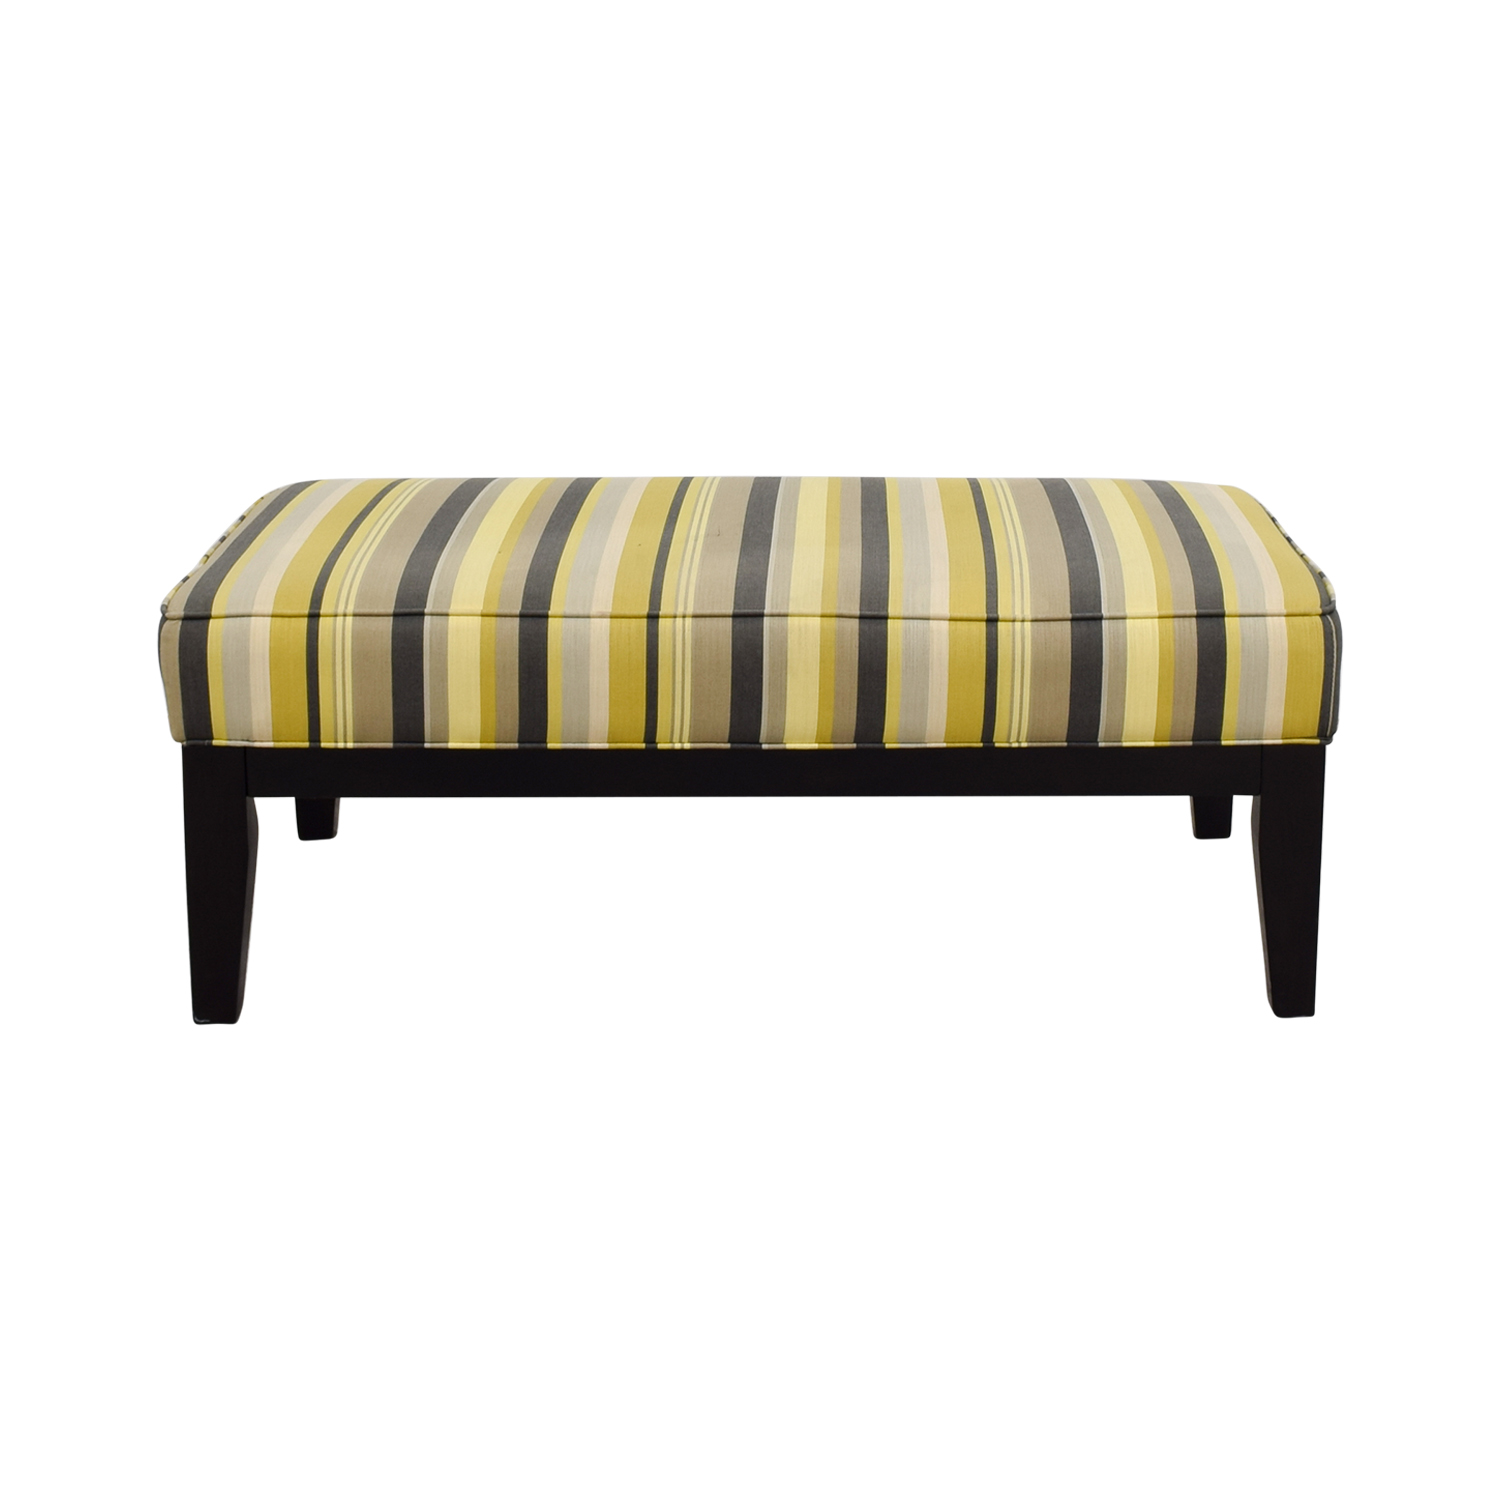 Amazing 49 Off Raymour Flanigan Raymour Flanigan Yellow Green And Grey Striped Oversized Ottoman Chairs Bralicious Painted Fabric Chair Ideas Braliciousco